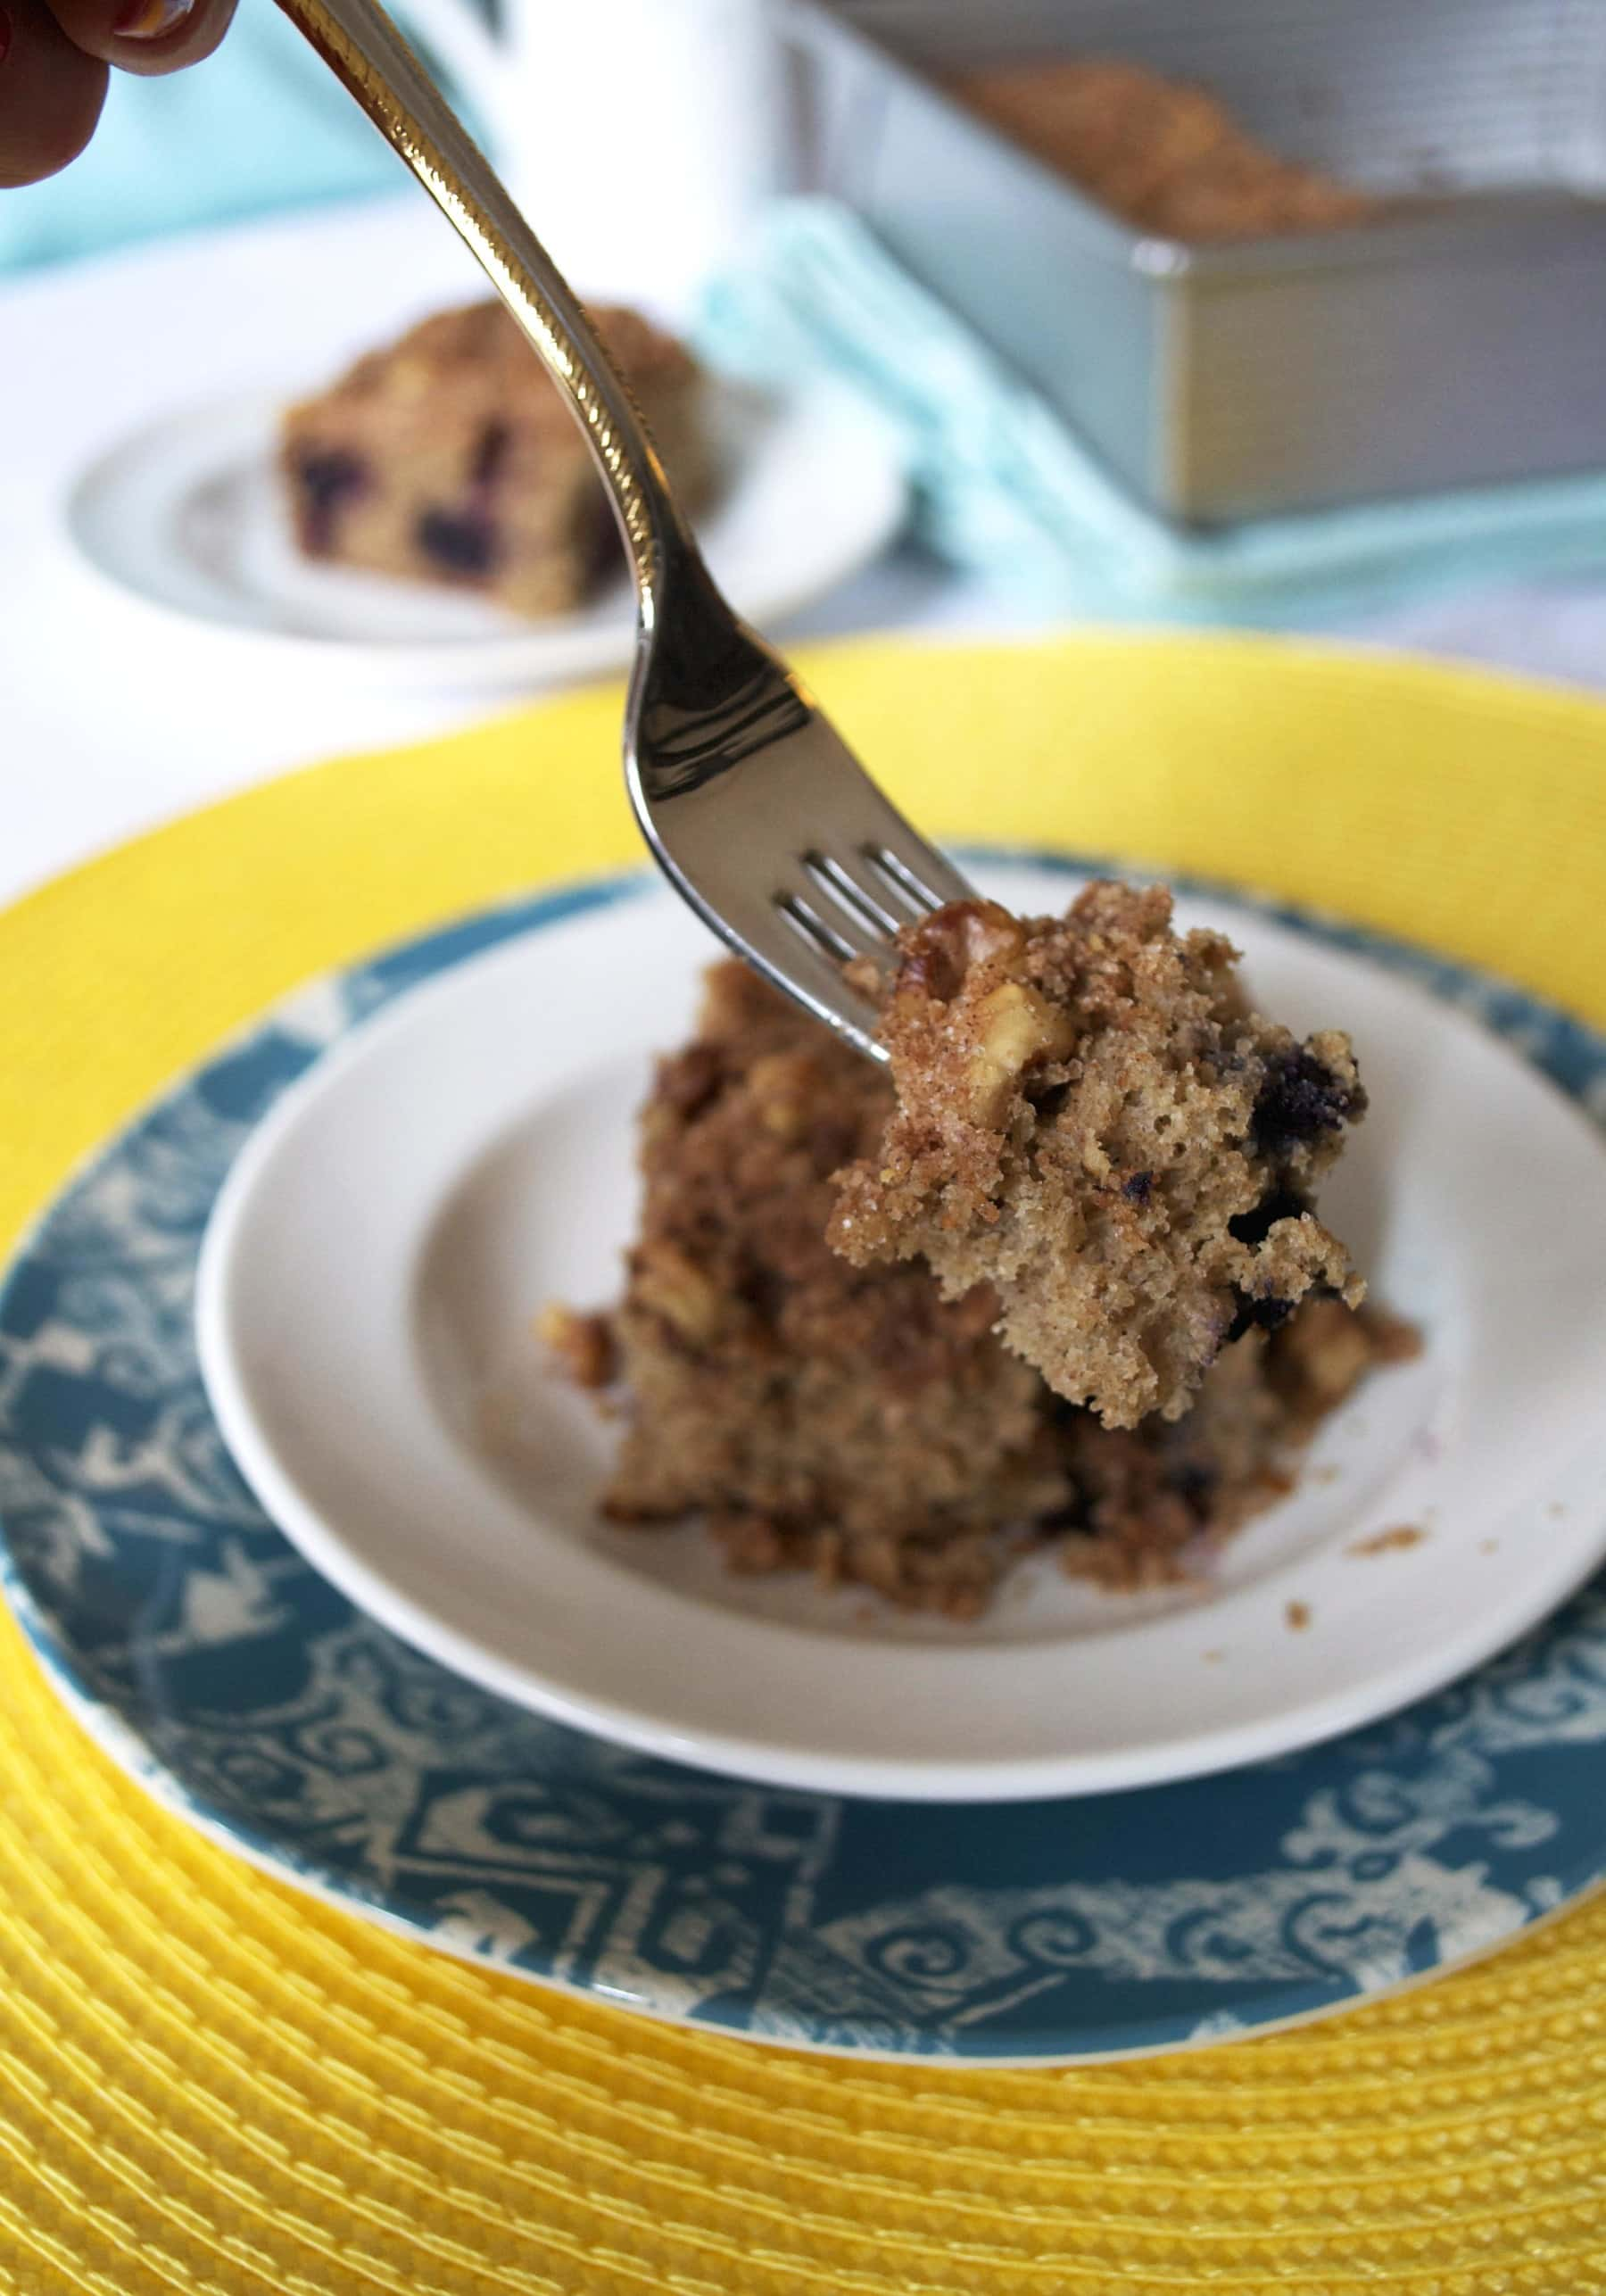 ... sugar walnut lid, this is truly the best blueberry coffee cake recipe